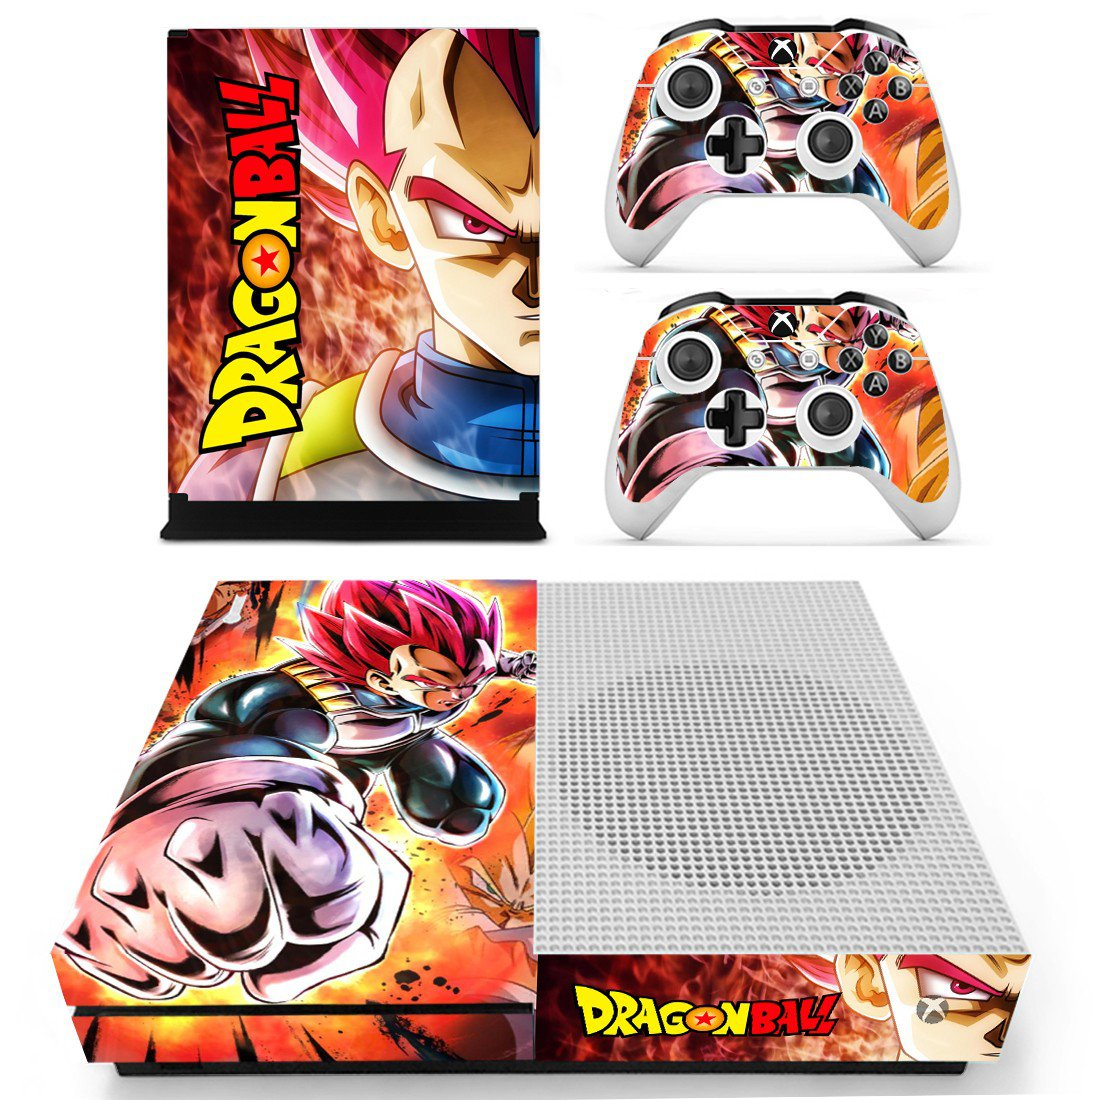 Dragon Ball Xbox one S skin